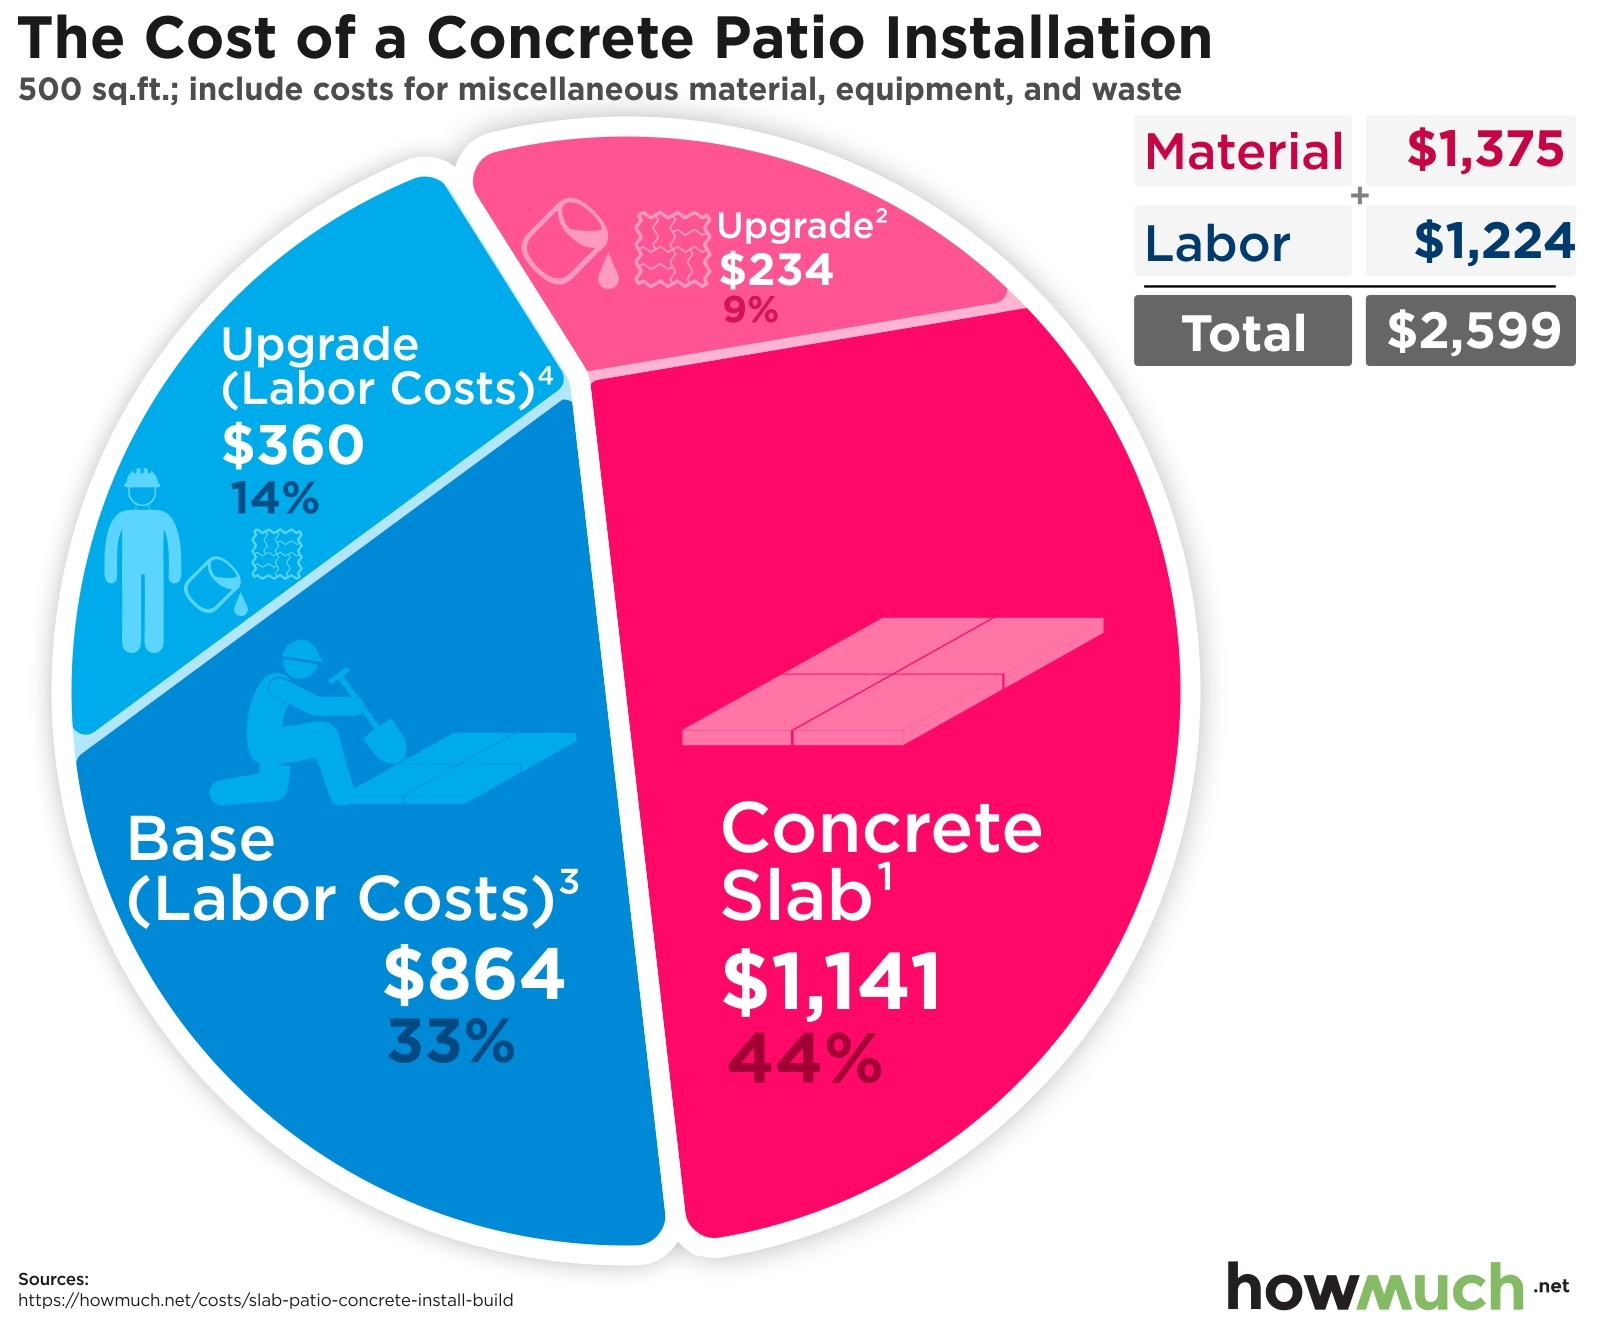 The Cost of a Concrete Patio Installation